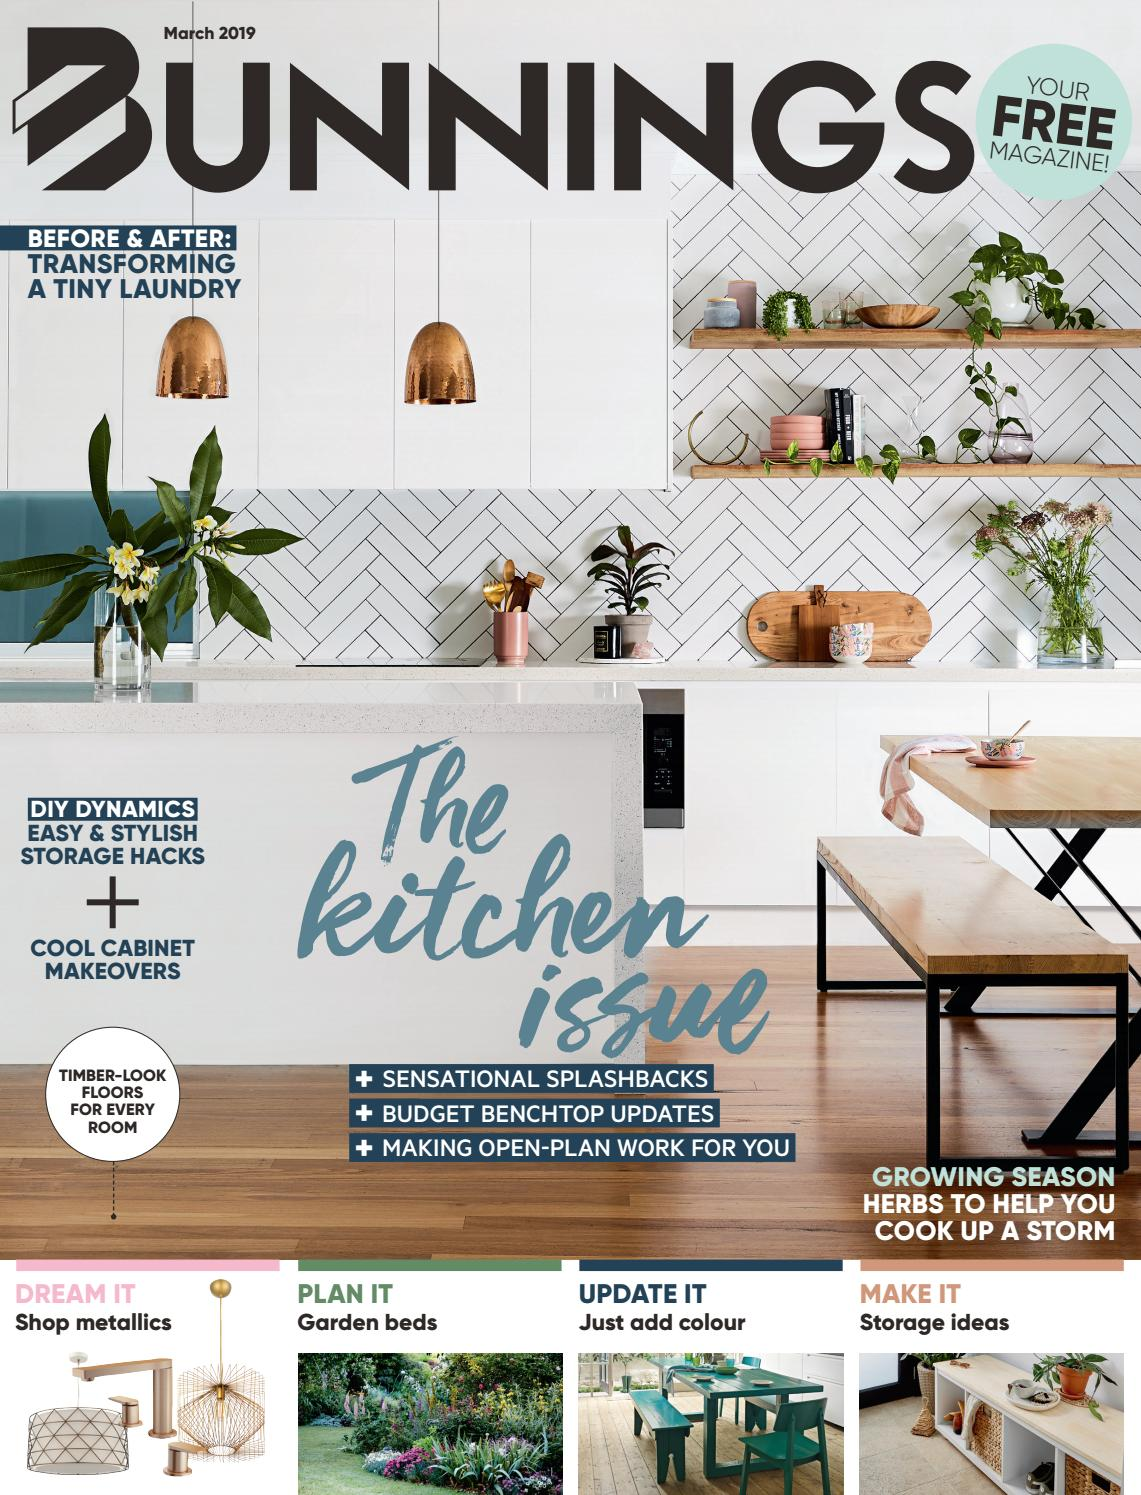 Bunnings Magazine March 2019 By Bunnings Issuu